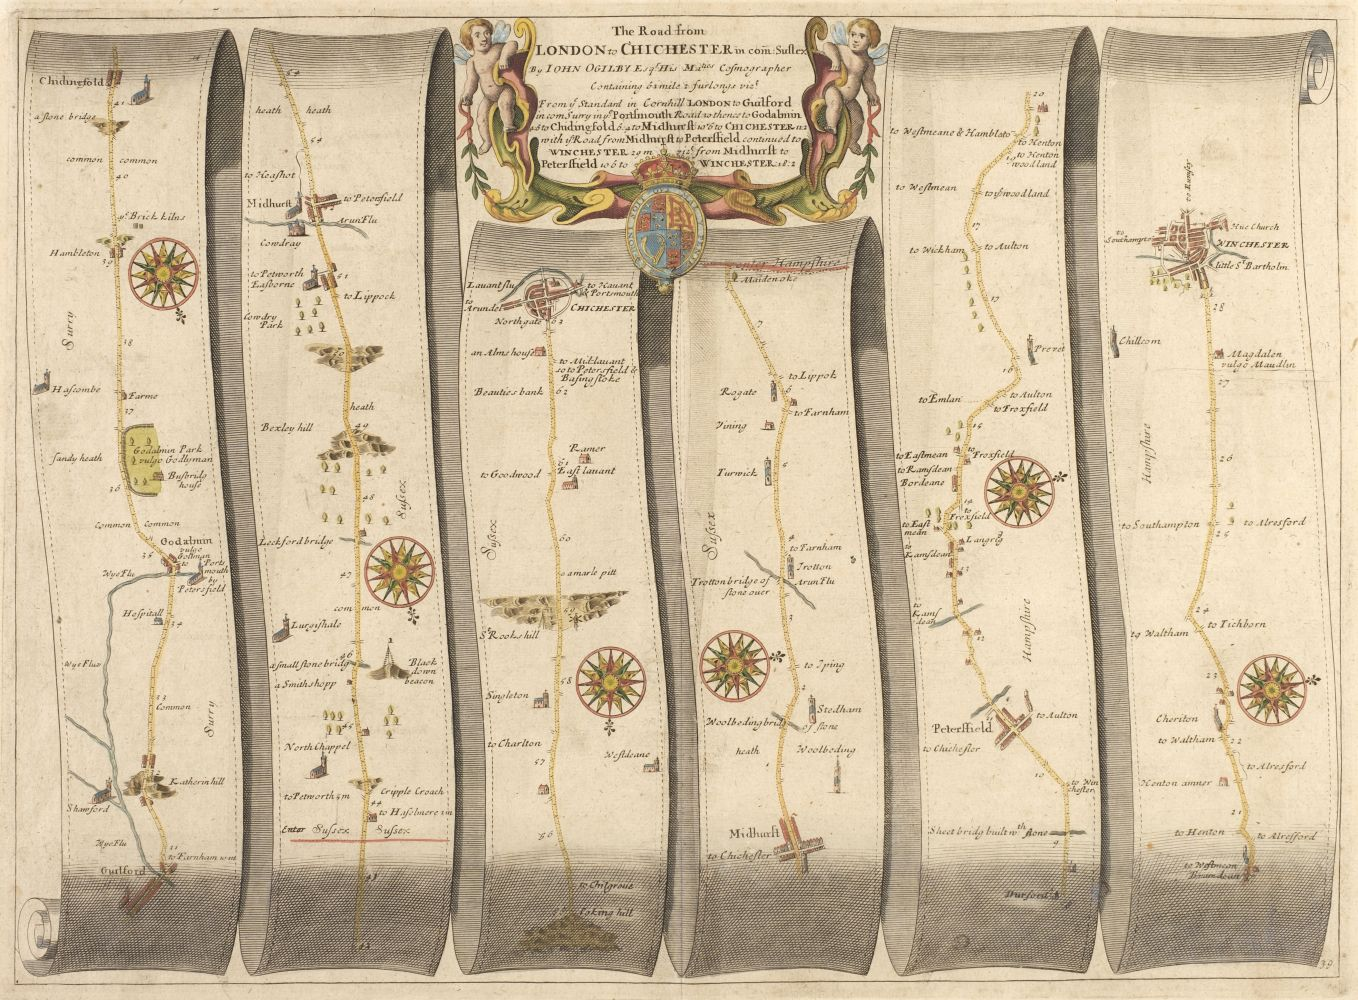 Ogilby (John). The Road from London to Chichester in com Sussex, circa 1675